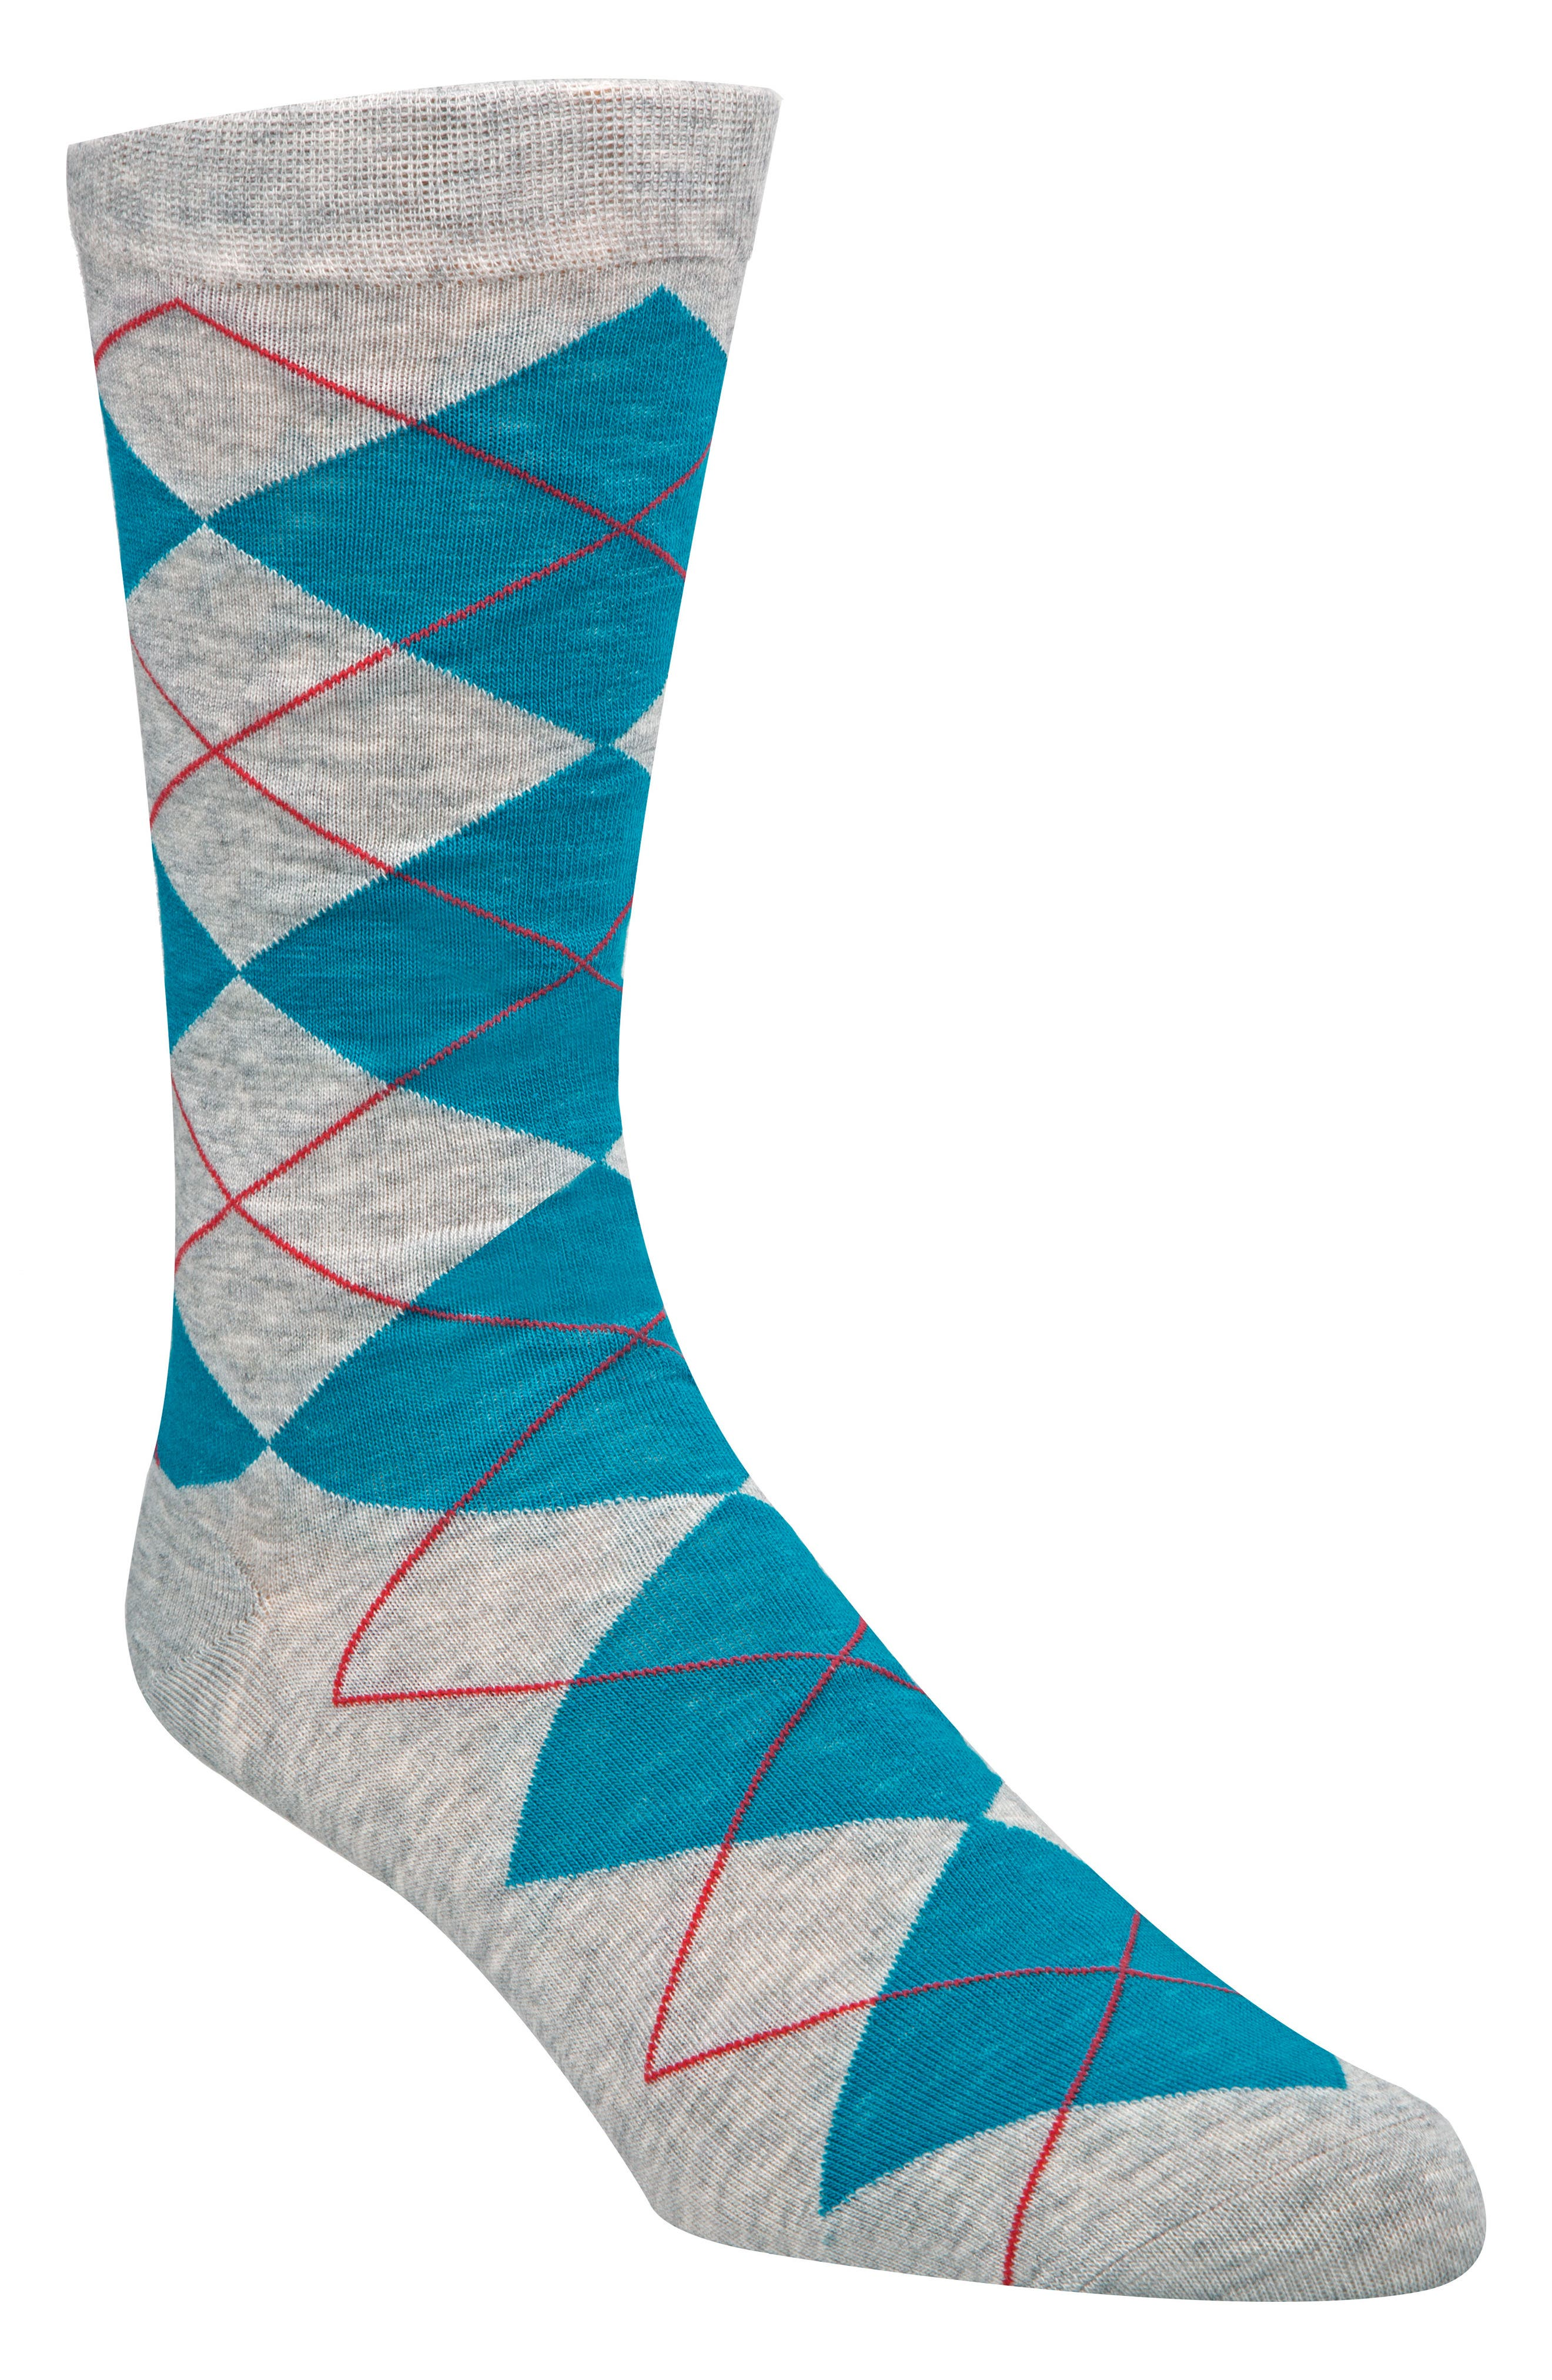 Argyle Socks,                         Main,                         color,